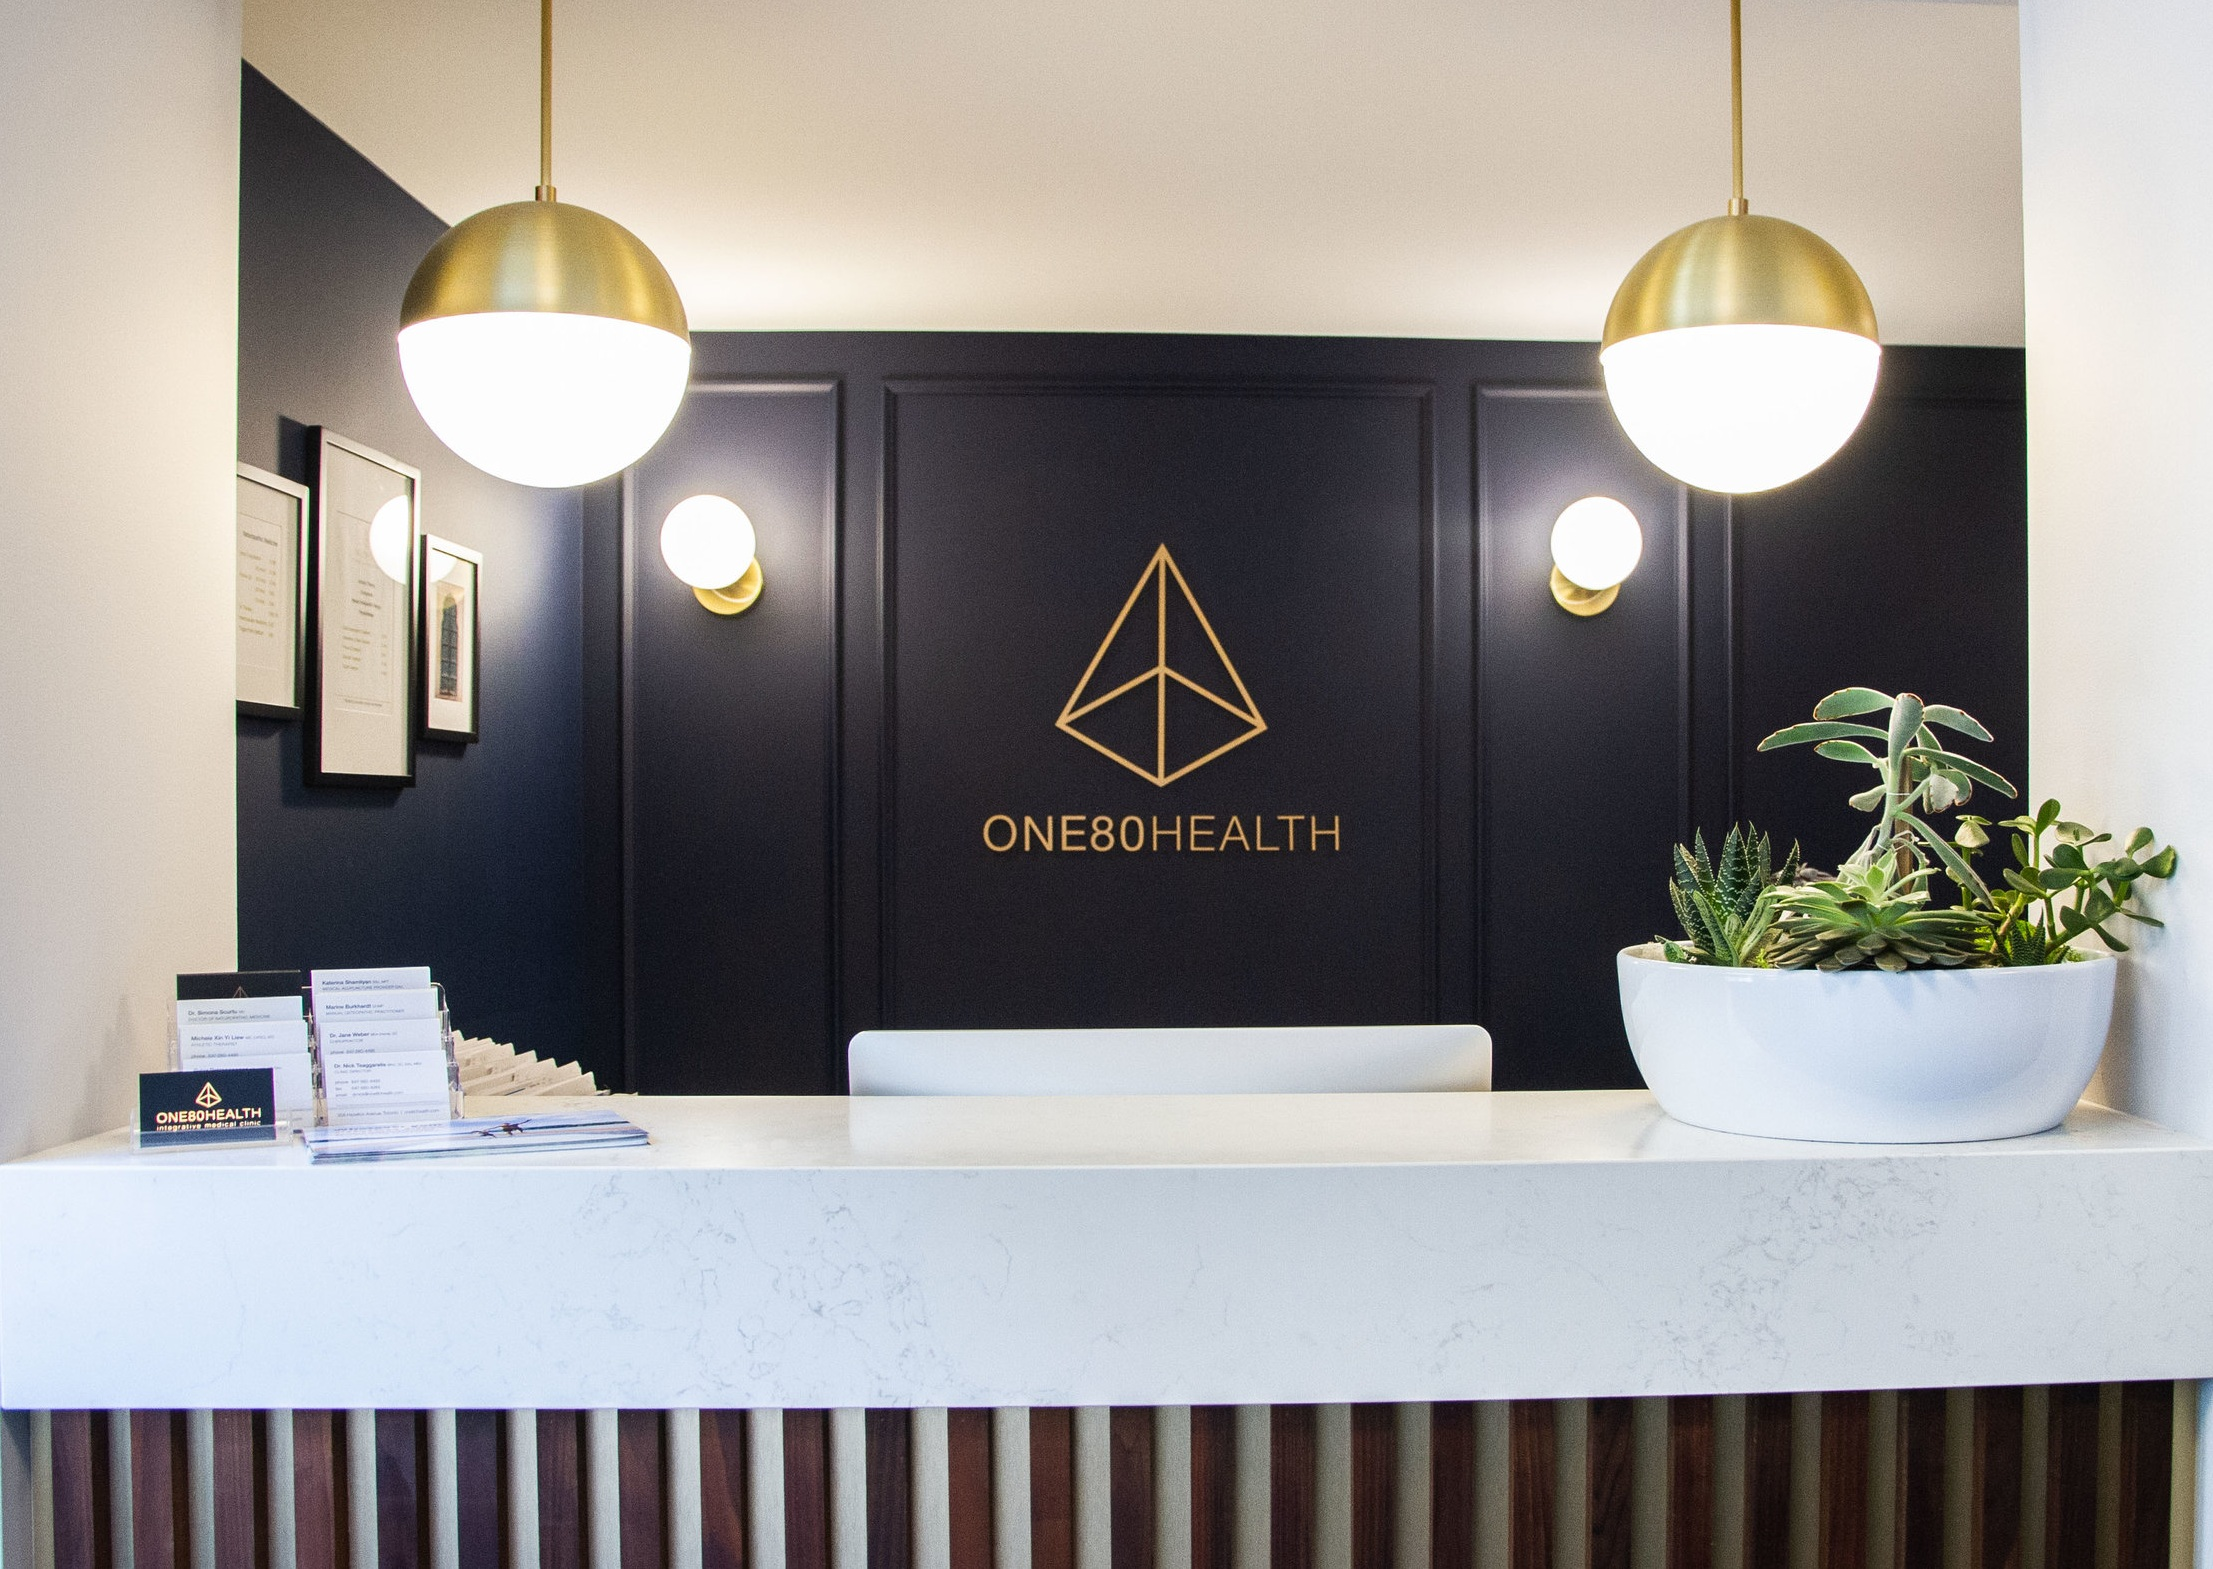 About - Find out about our integrative health clinic, dedicated practitioners, and our tailored rehabilitation programs & services.